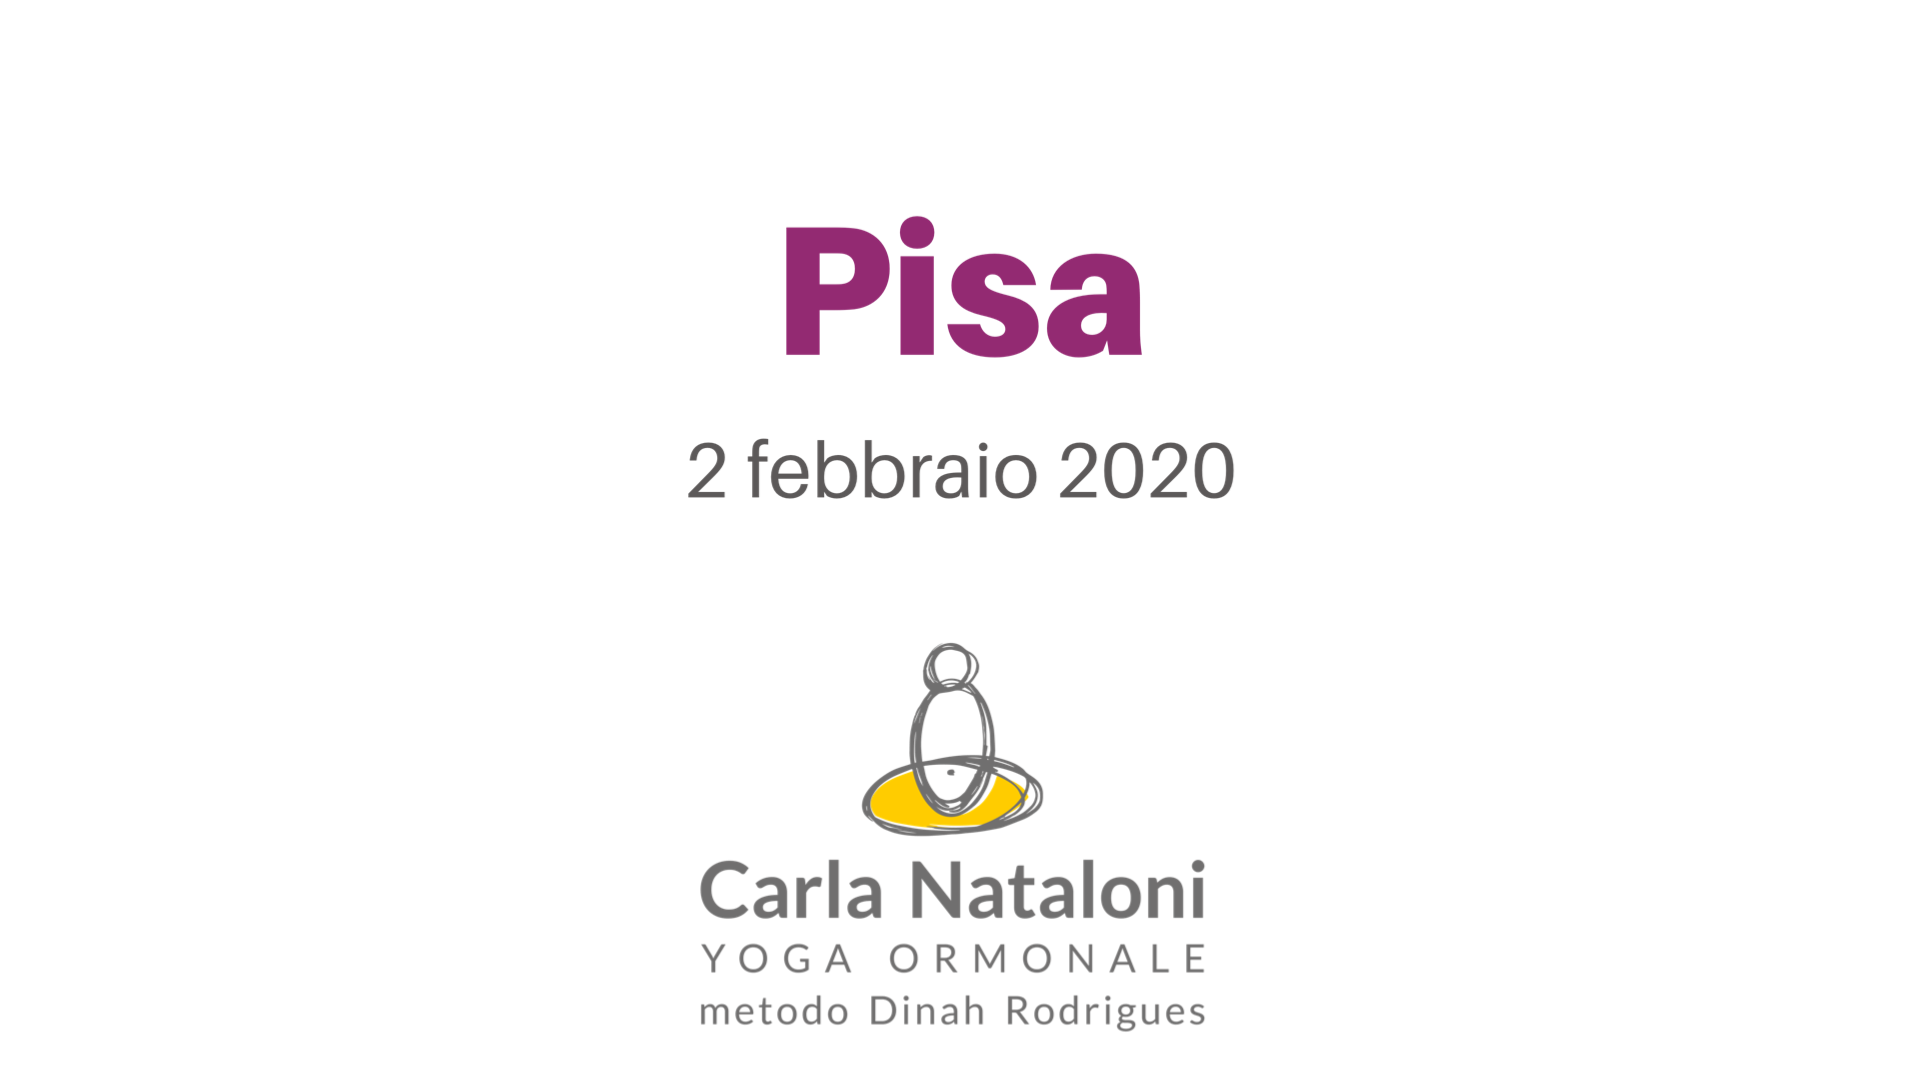 pisa yoga ormonale